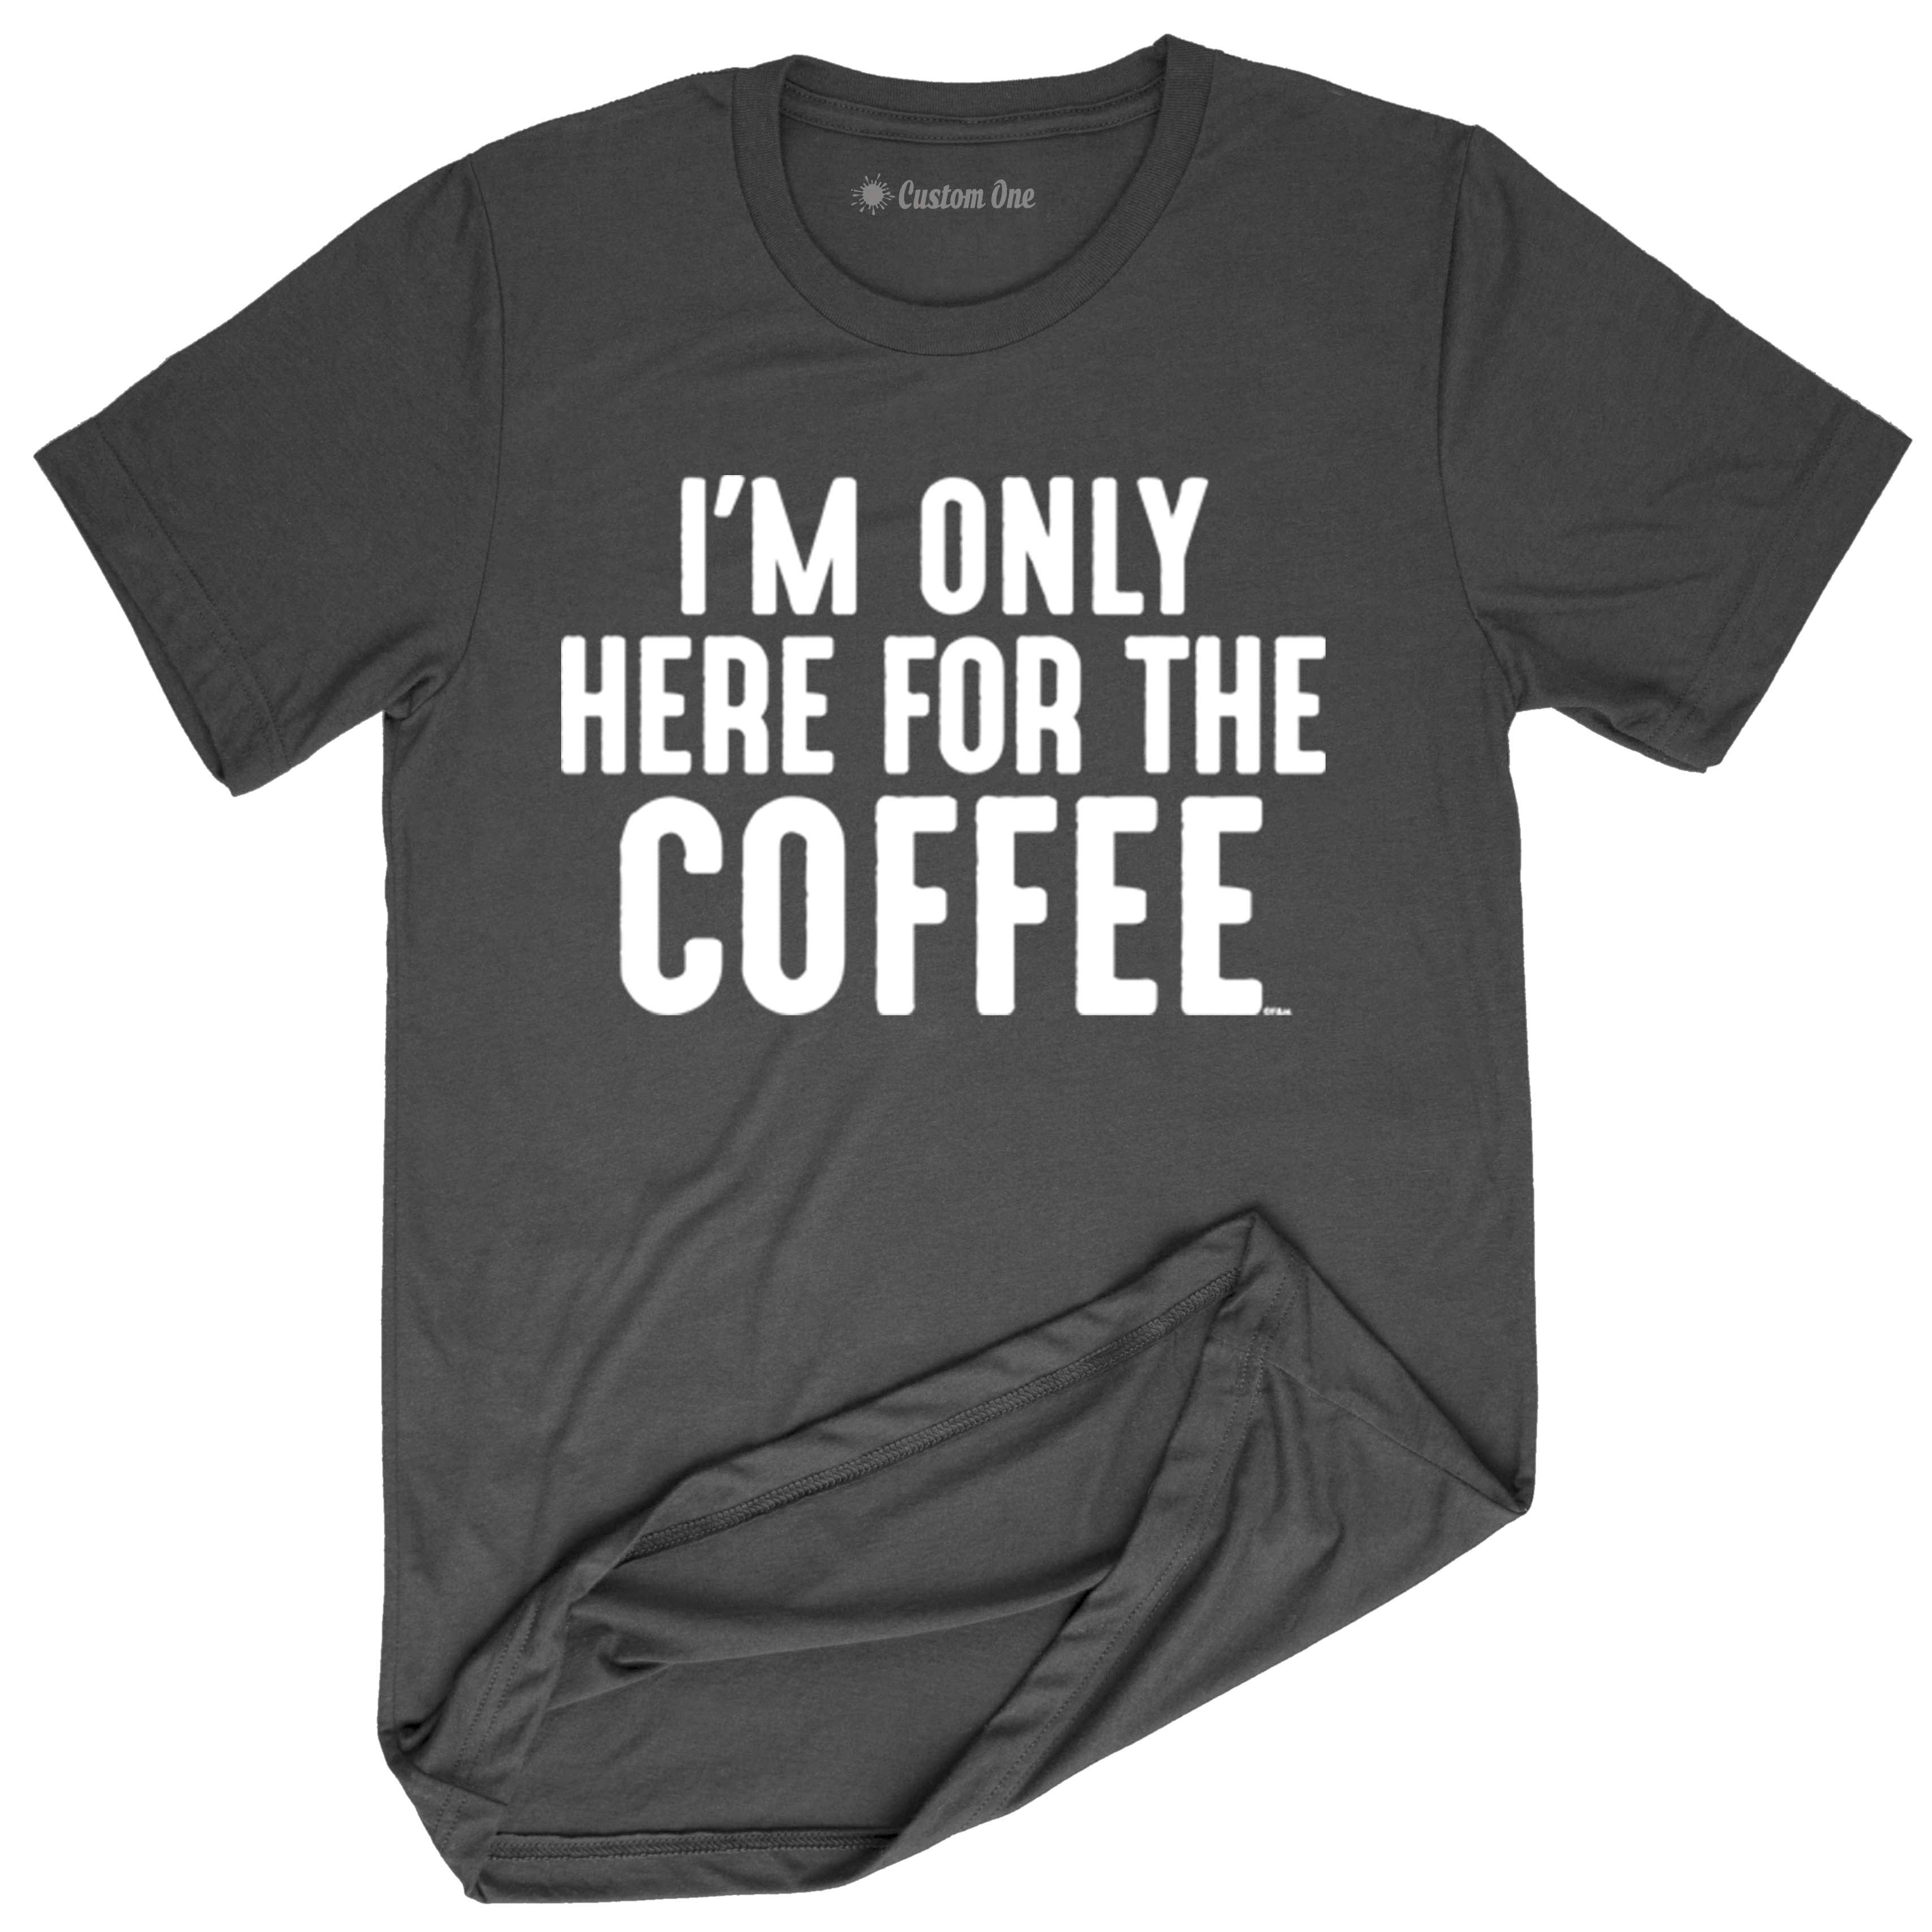 I AM HERE FOR COFFEE